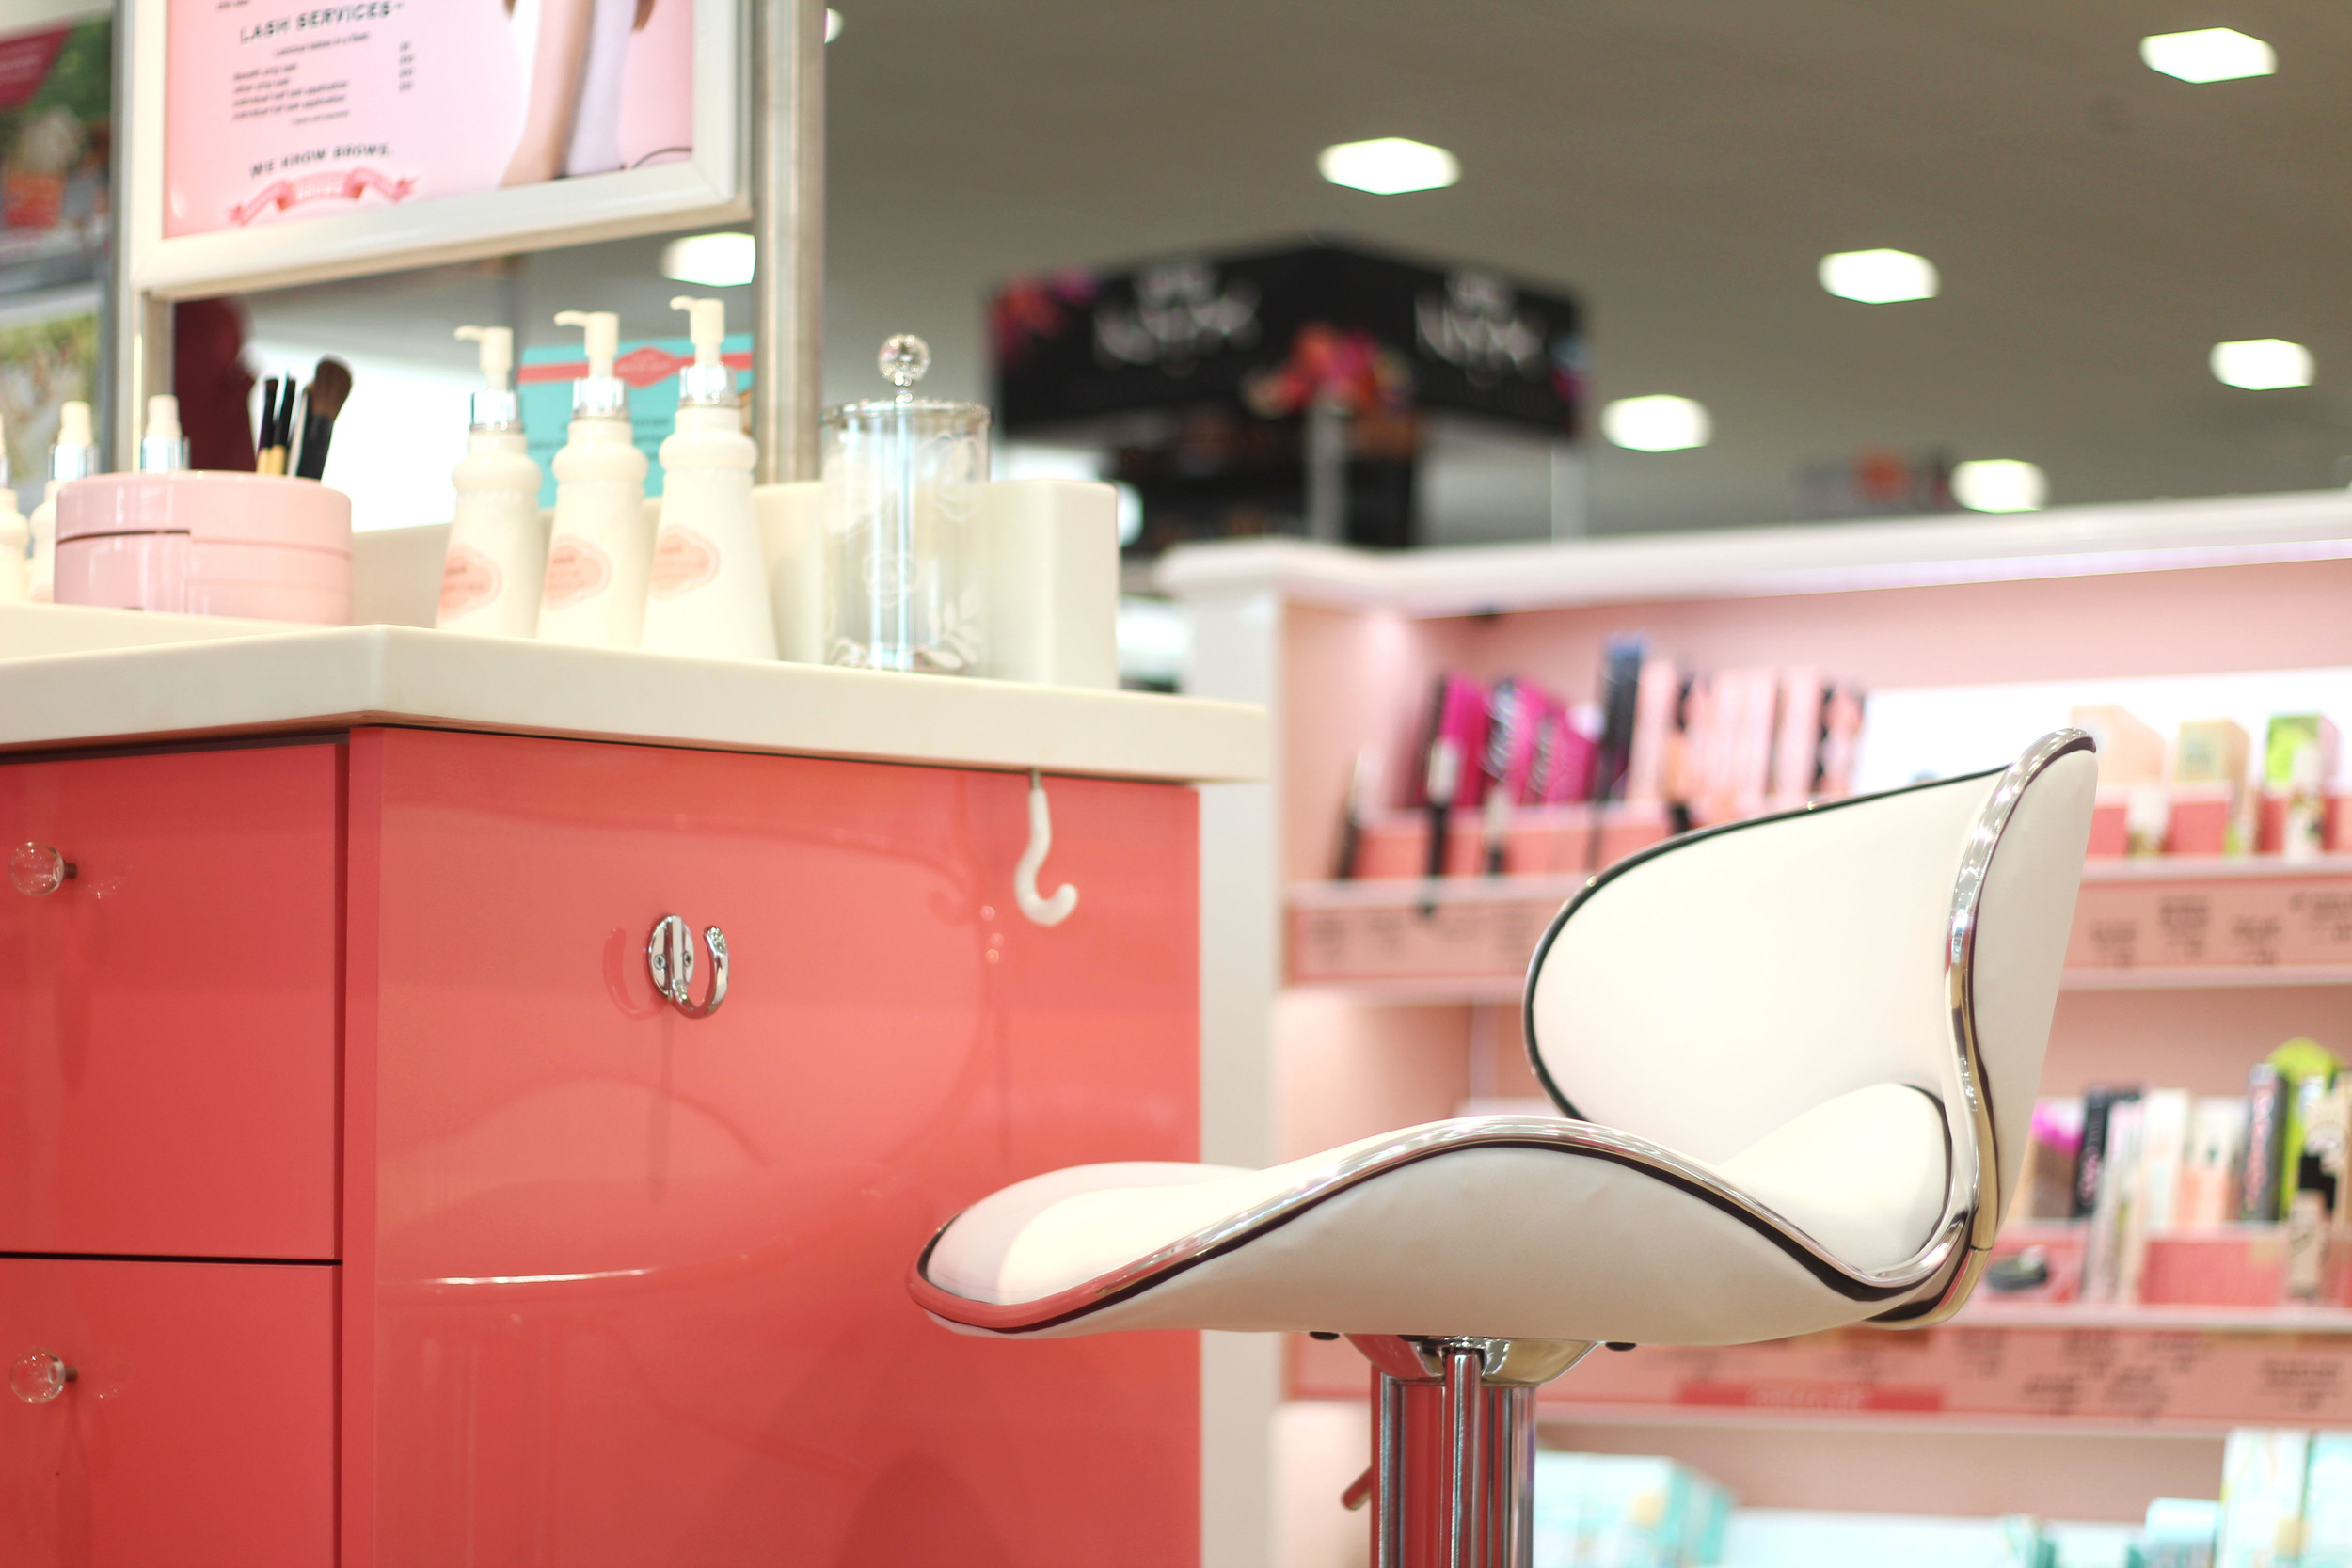 Sit down and relax at a Benefit service station while the pros beautify you.